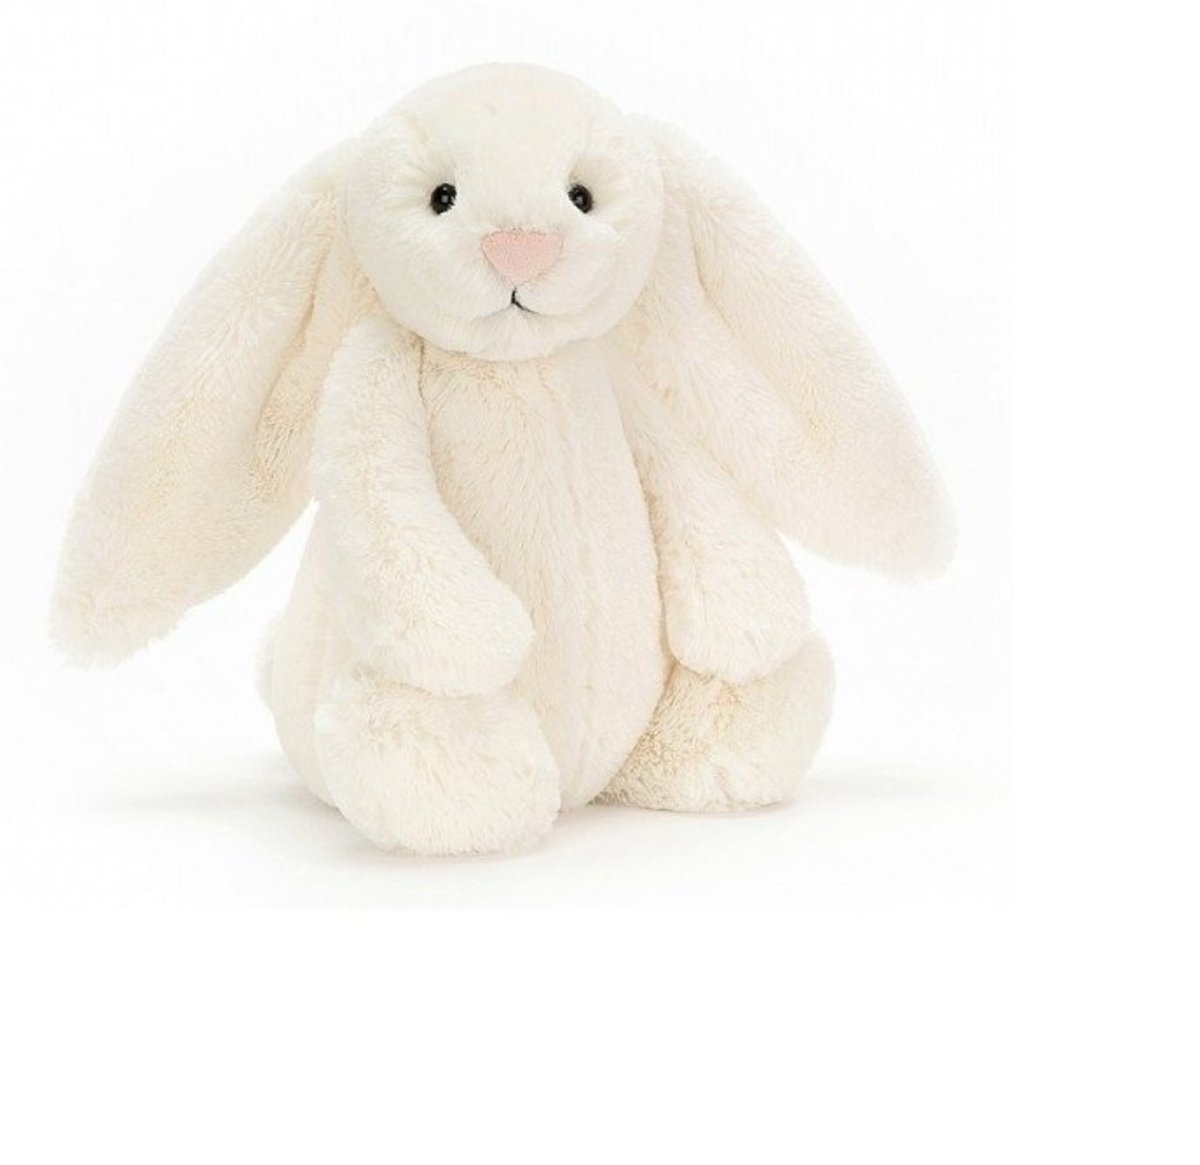 Jellycat Bashful Bunny Large in Cream